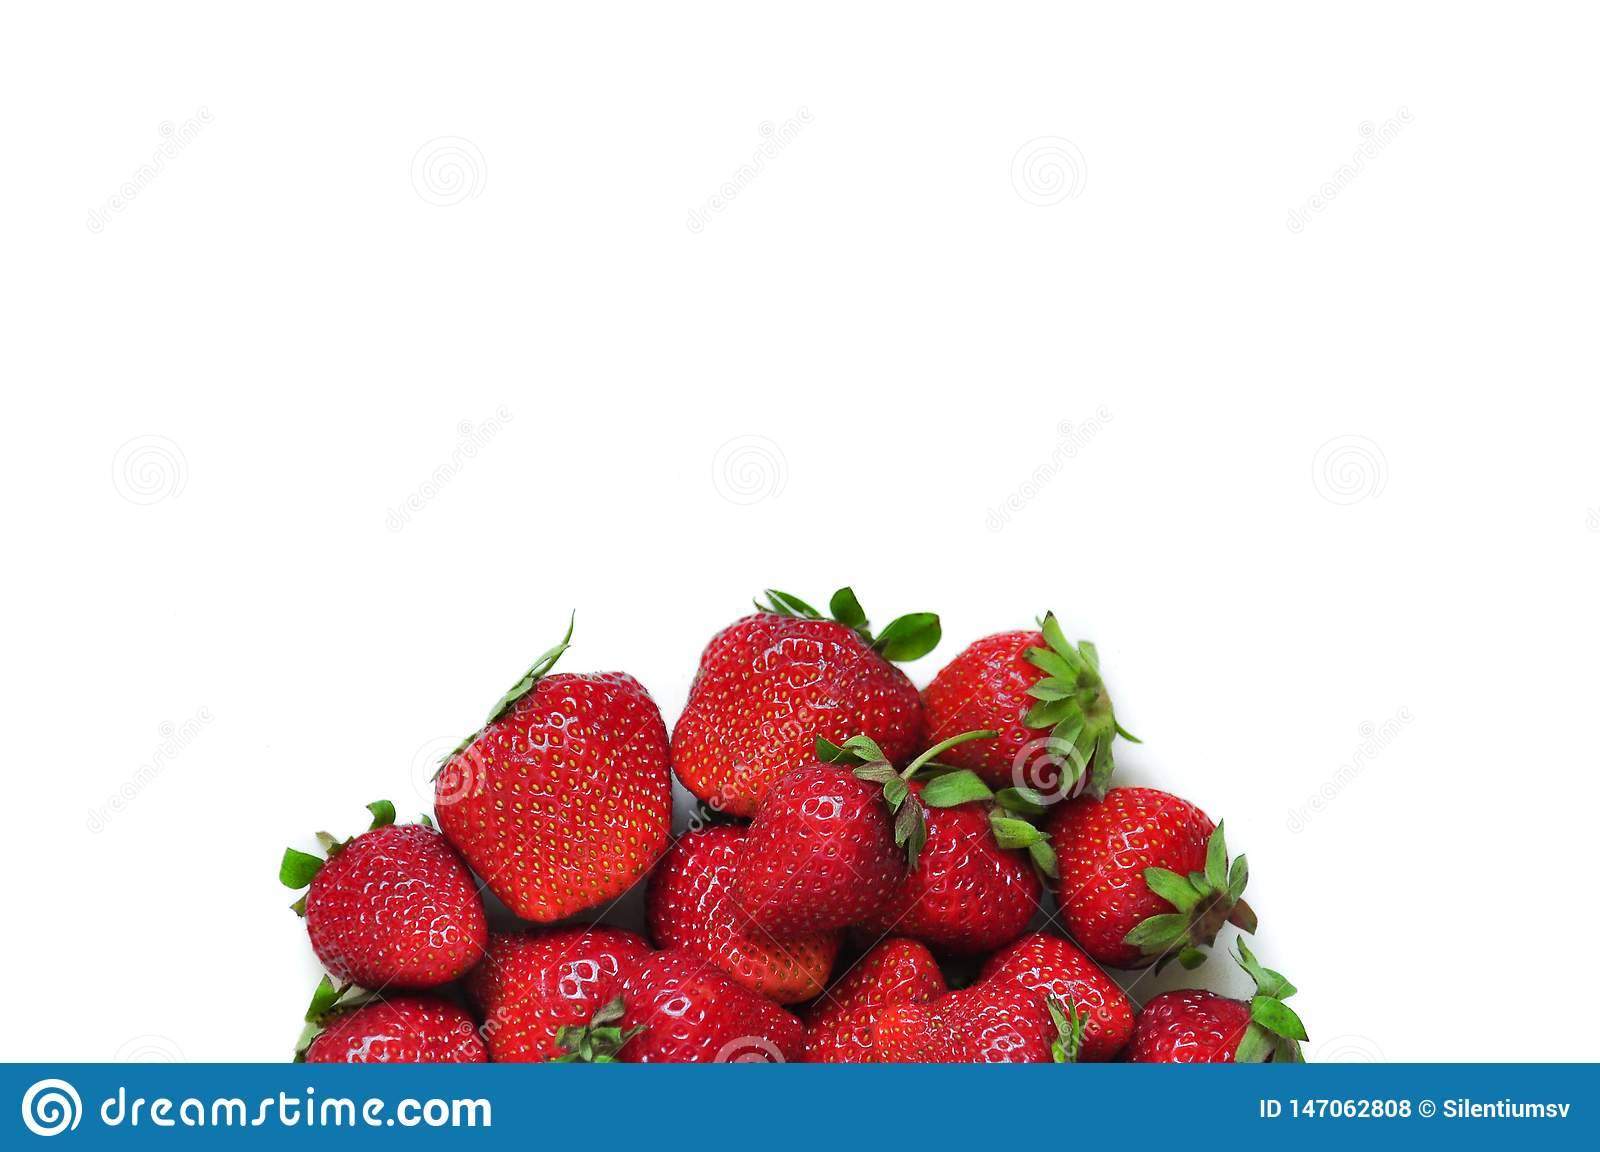 A lot of strawberry berries on a white background. A group of sweet fruits. Vitamin fruits for smoothies, cocktails and preserves.